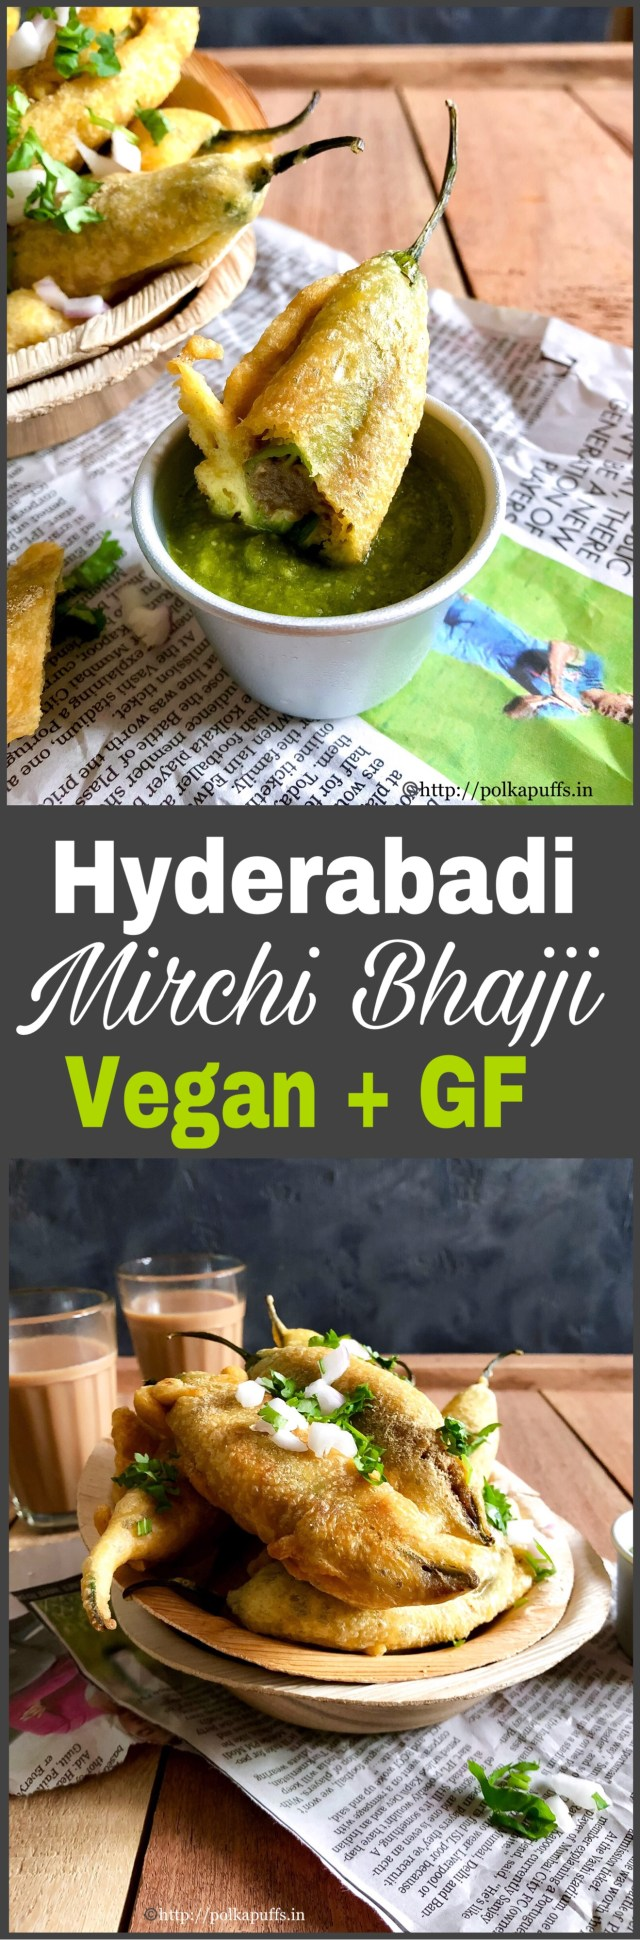 Hyderabadi Mirchi Bhajji Vegan & GF | How to make Hyderabadi Mirchi Wada